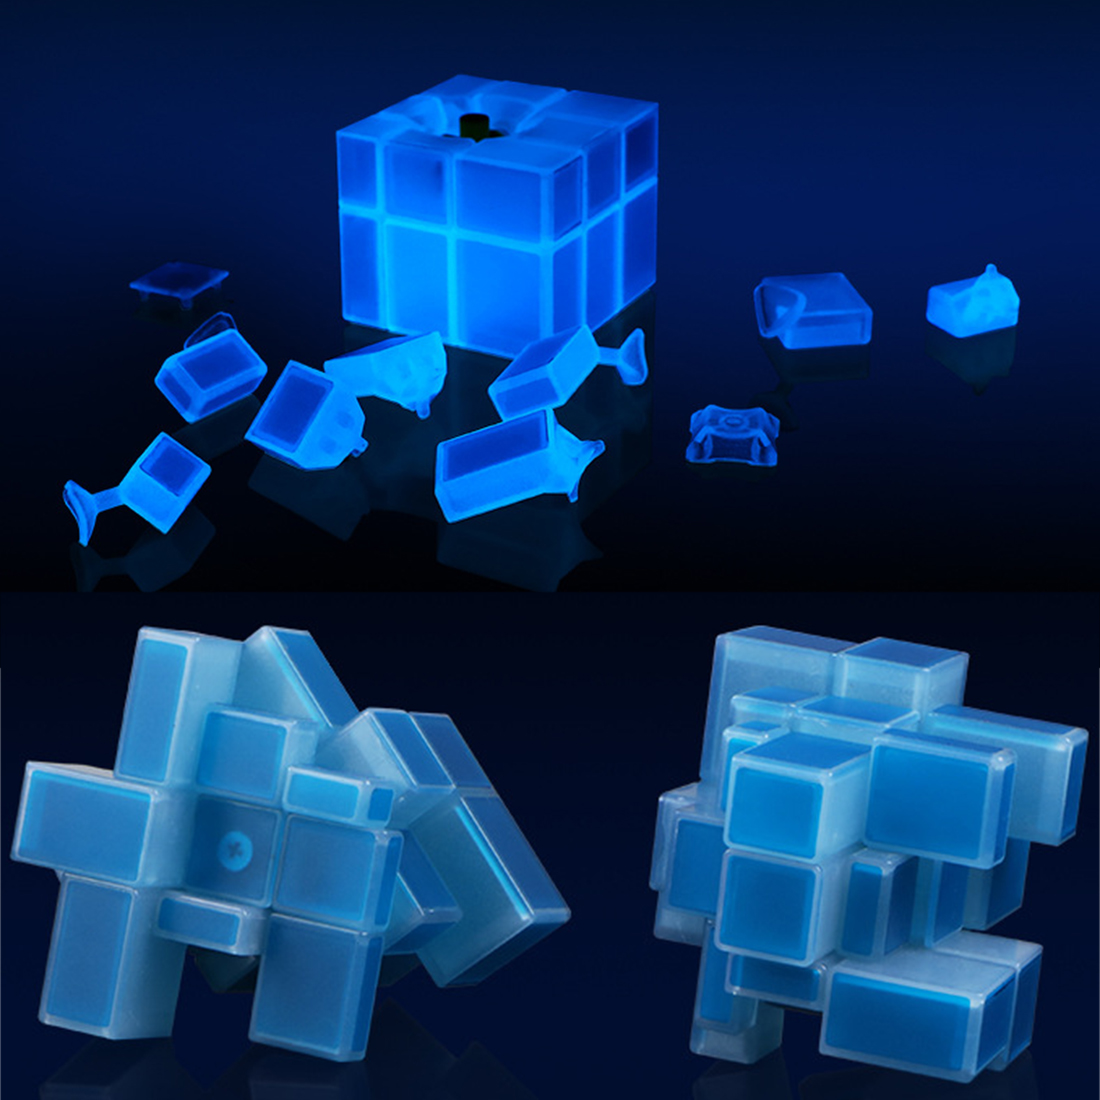 Image 5 - New QiYi 3X3X3 Mirror Blocks Luminous Magic Speed Cube Puzzle Cubo Magico Professional Learning&Educational Classic Toys Cube-in Magic Cubes from Toys & Hobbies